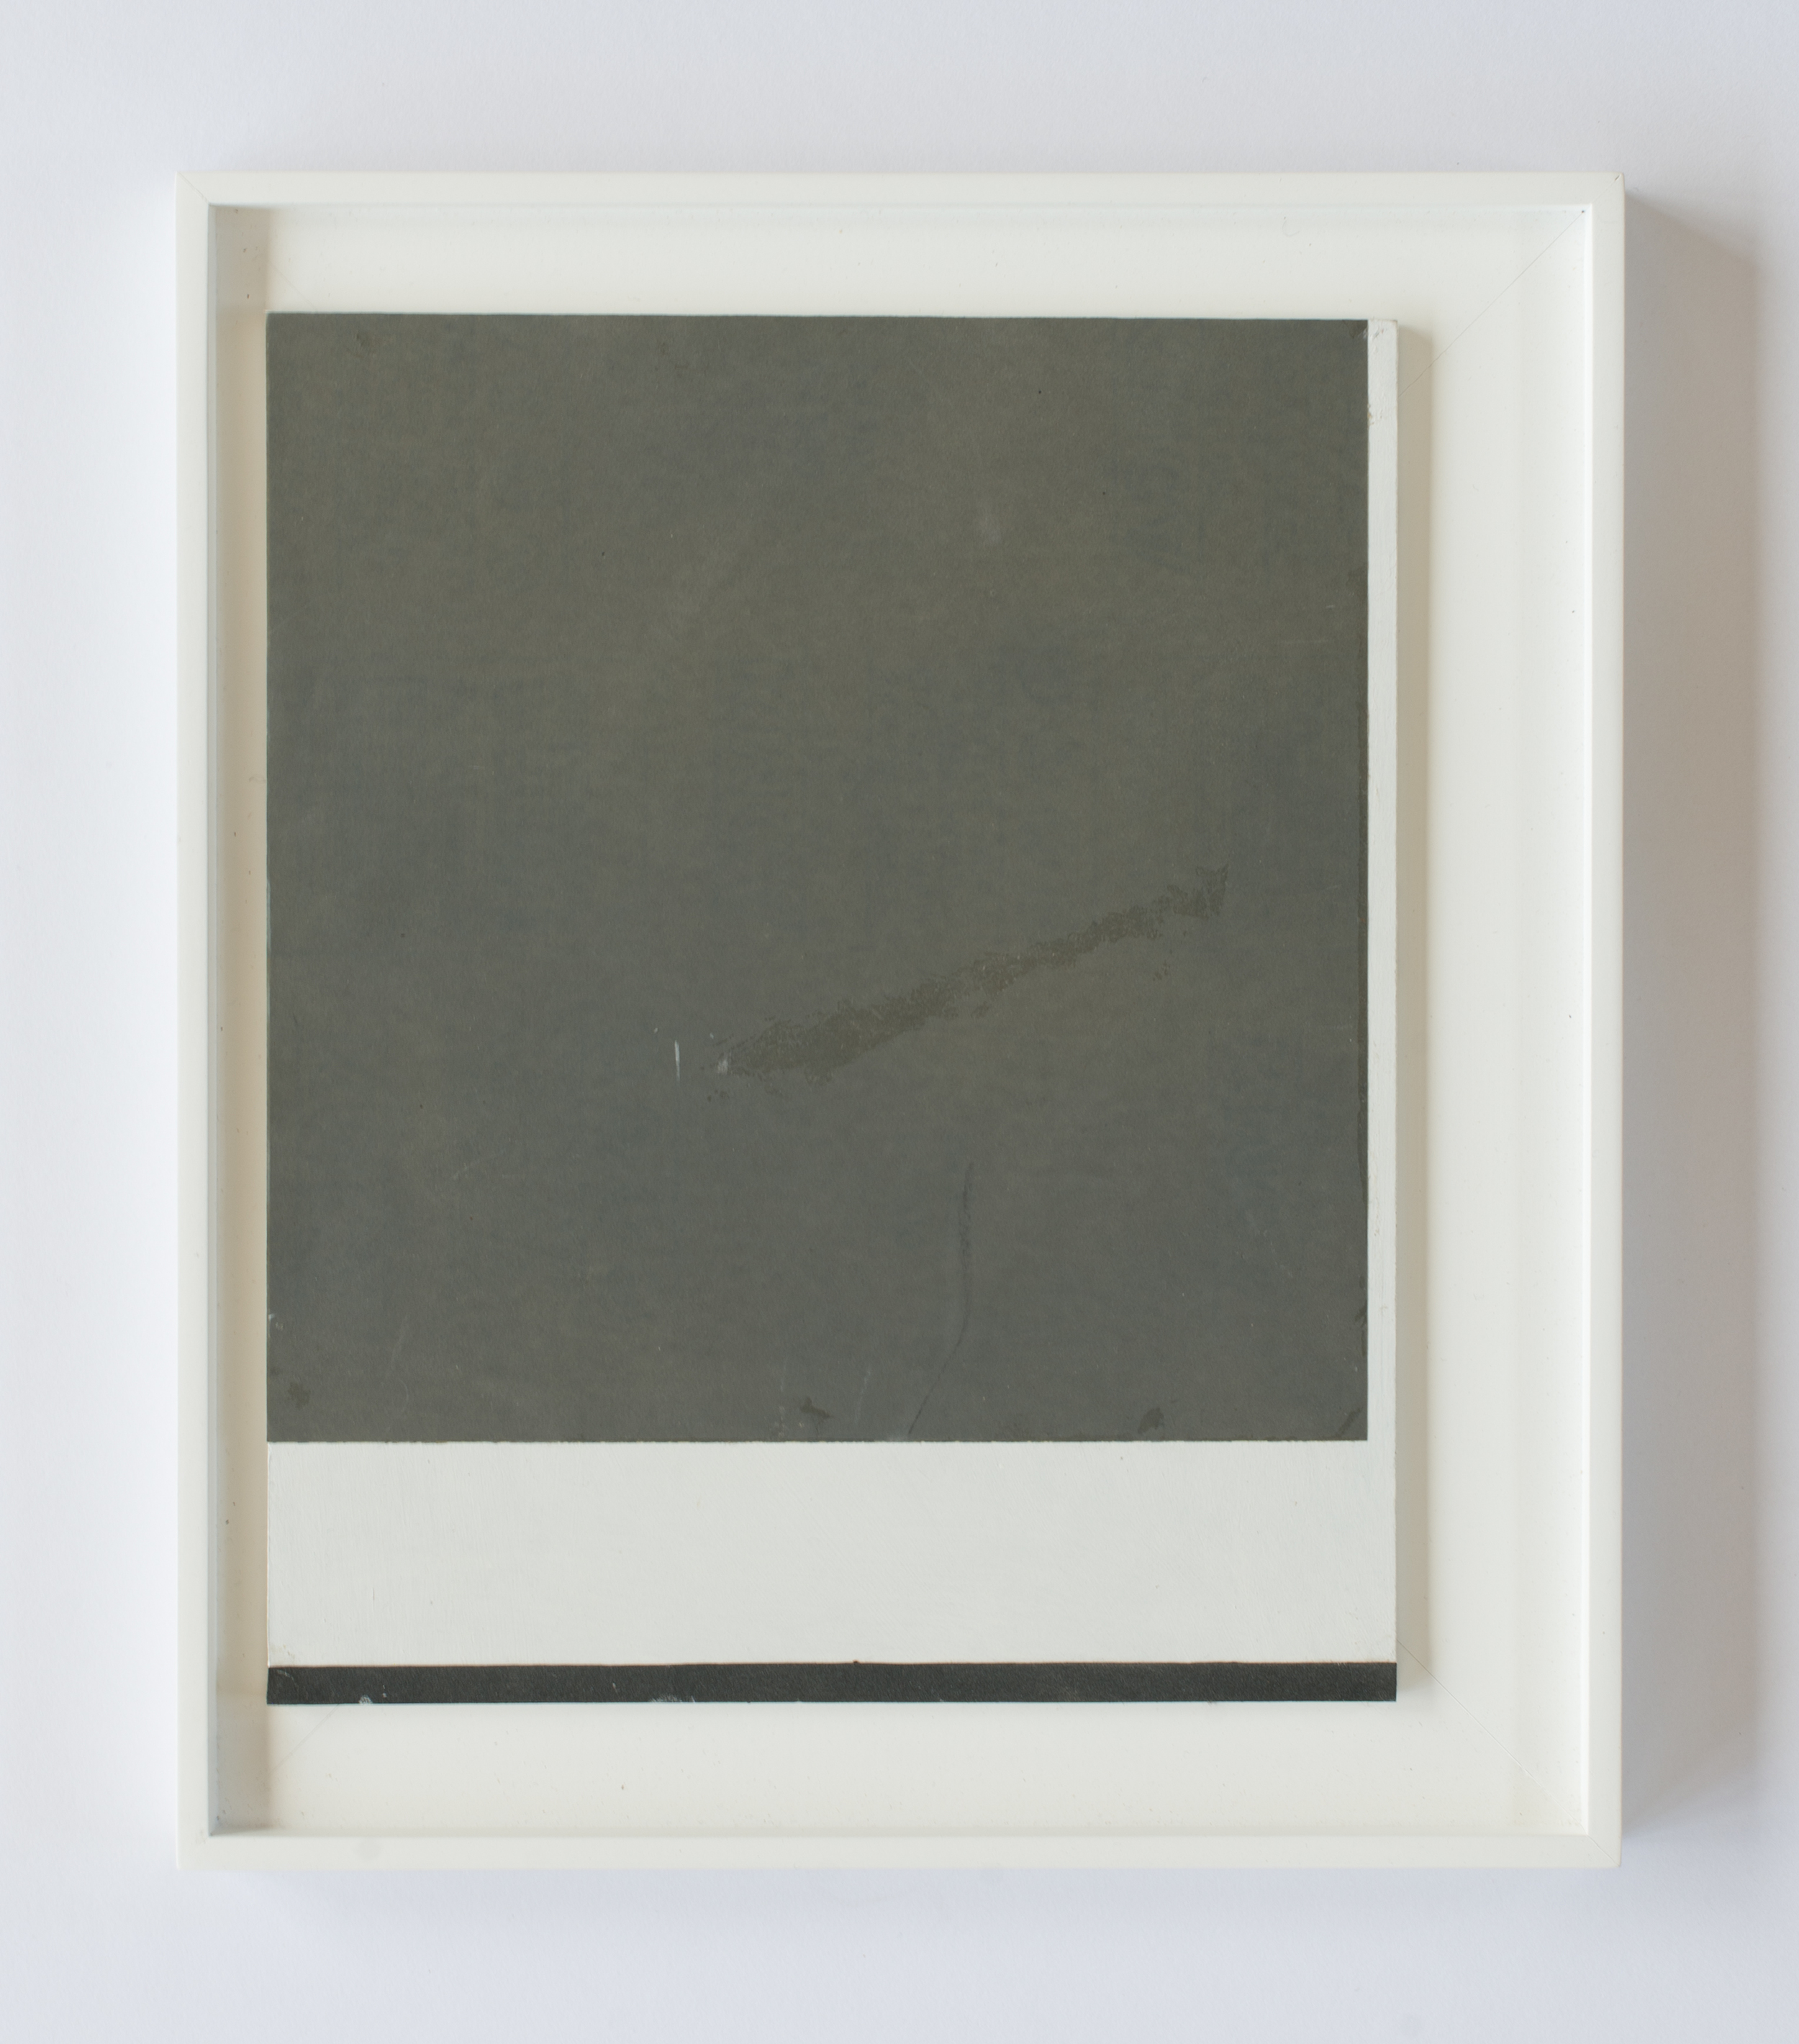 Peter Adsett, Painting number 11, 2014, Mixed material, 34.5 x 29.5 x 2.2cm, IMG X Tom Teutenberg.jpg